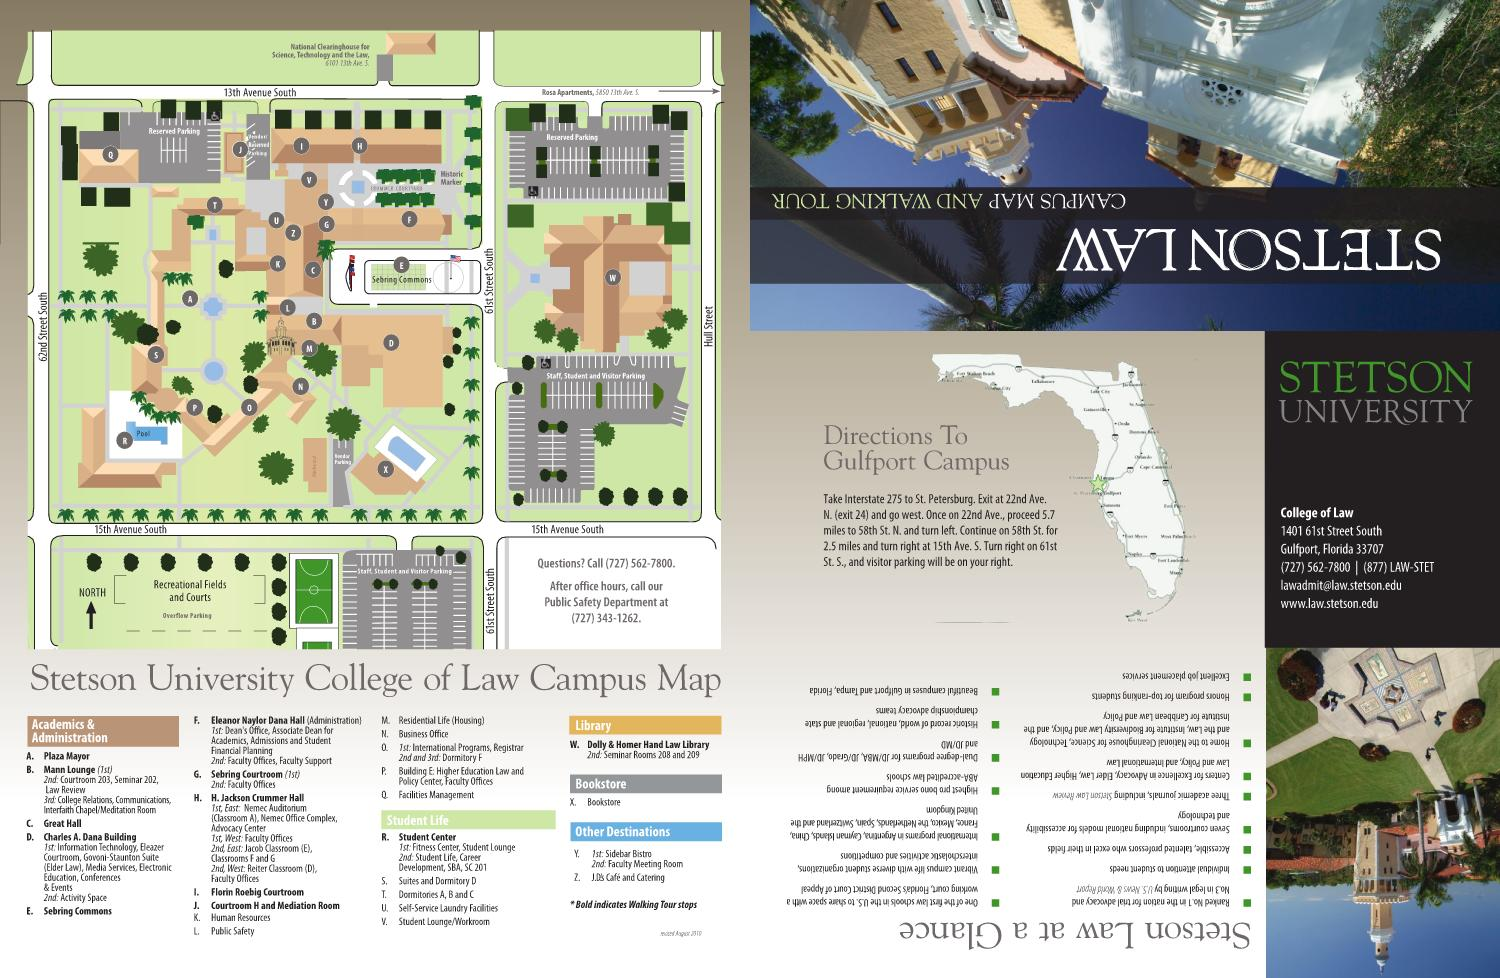 Stetson Campus Map 2010 Stetson Law Campus Map and Walking Tour by Stetson University